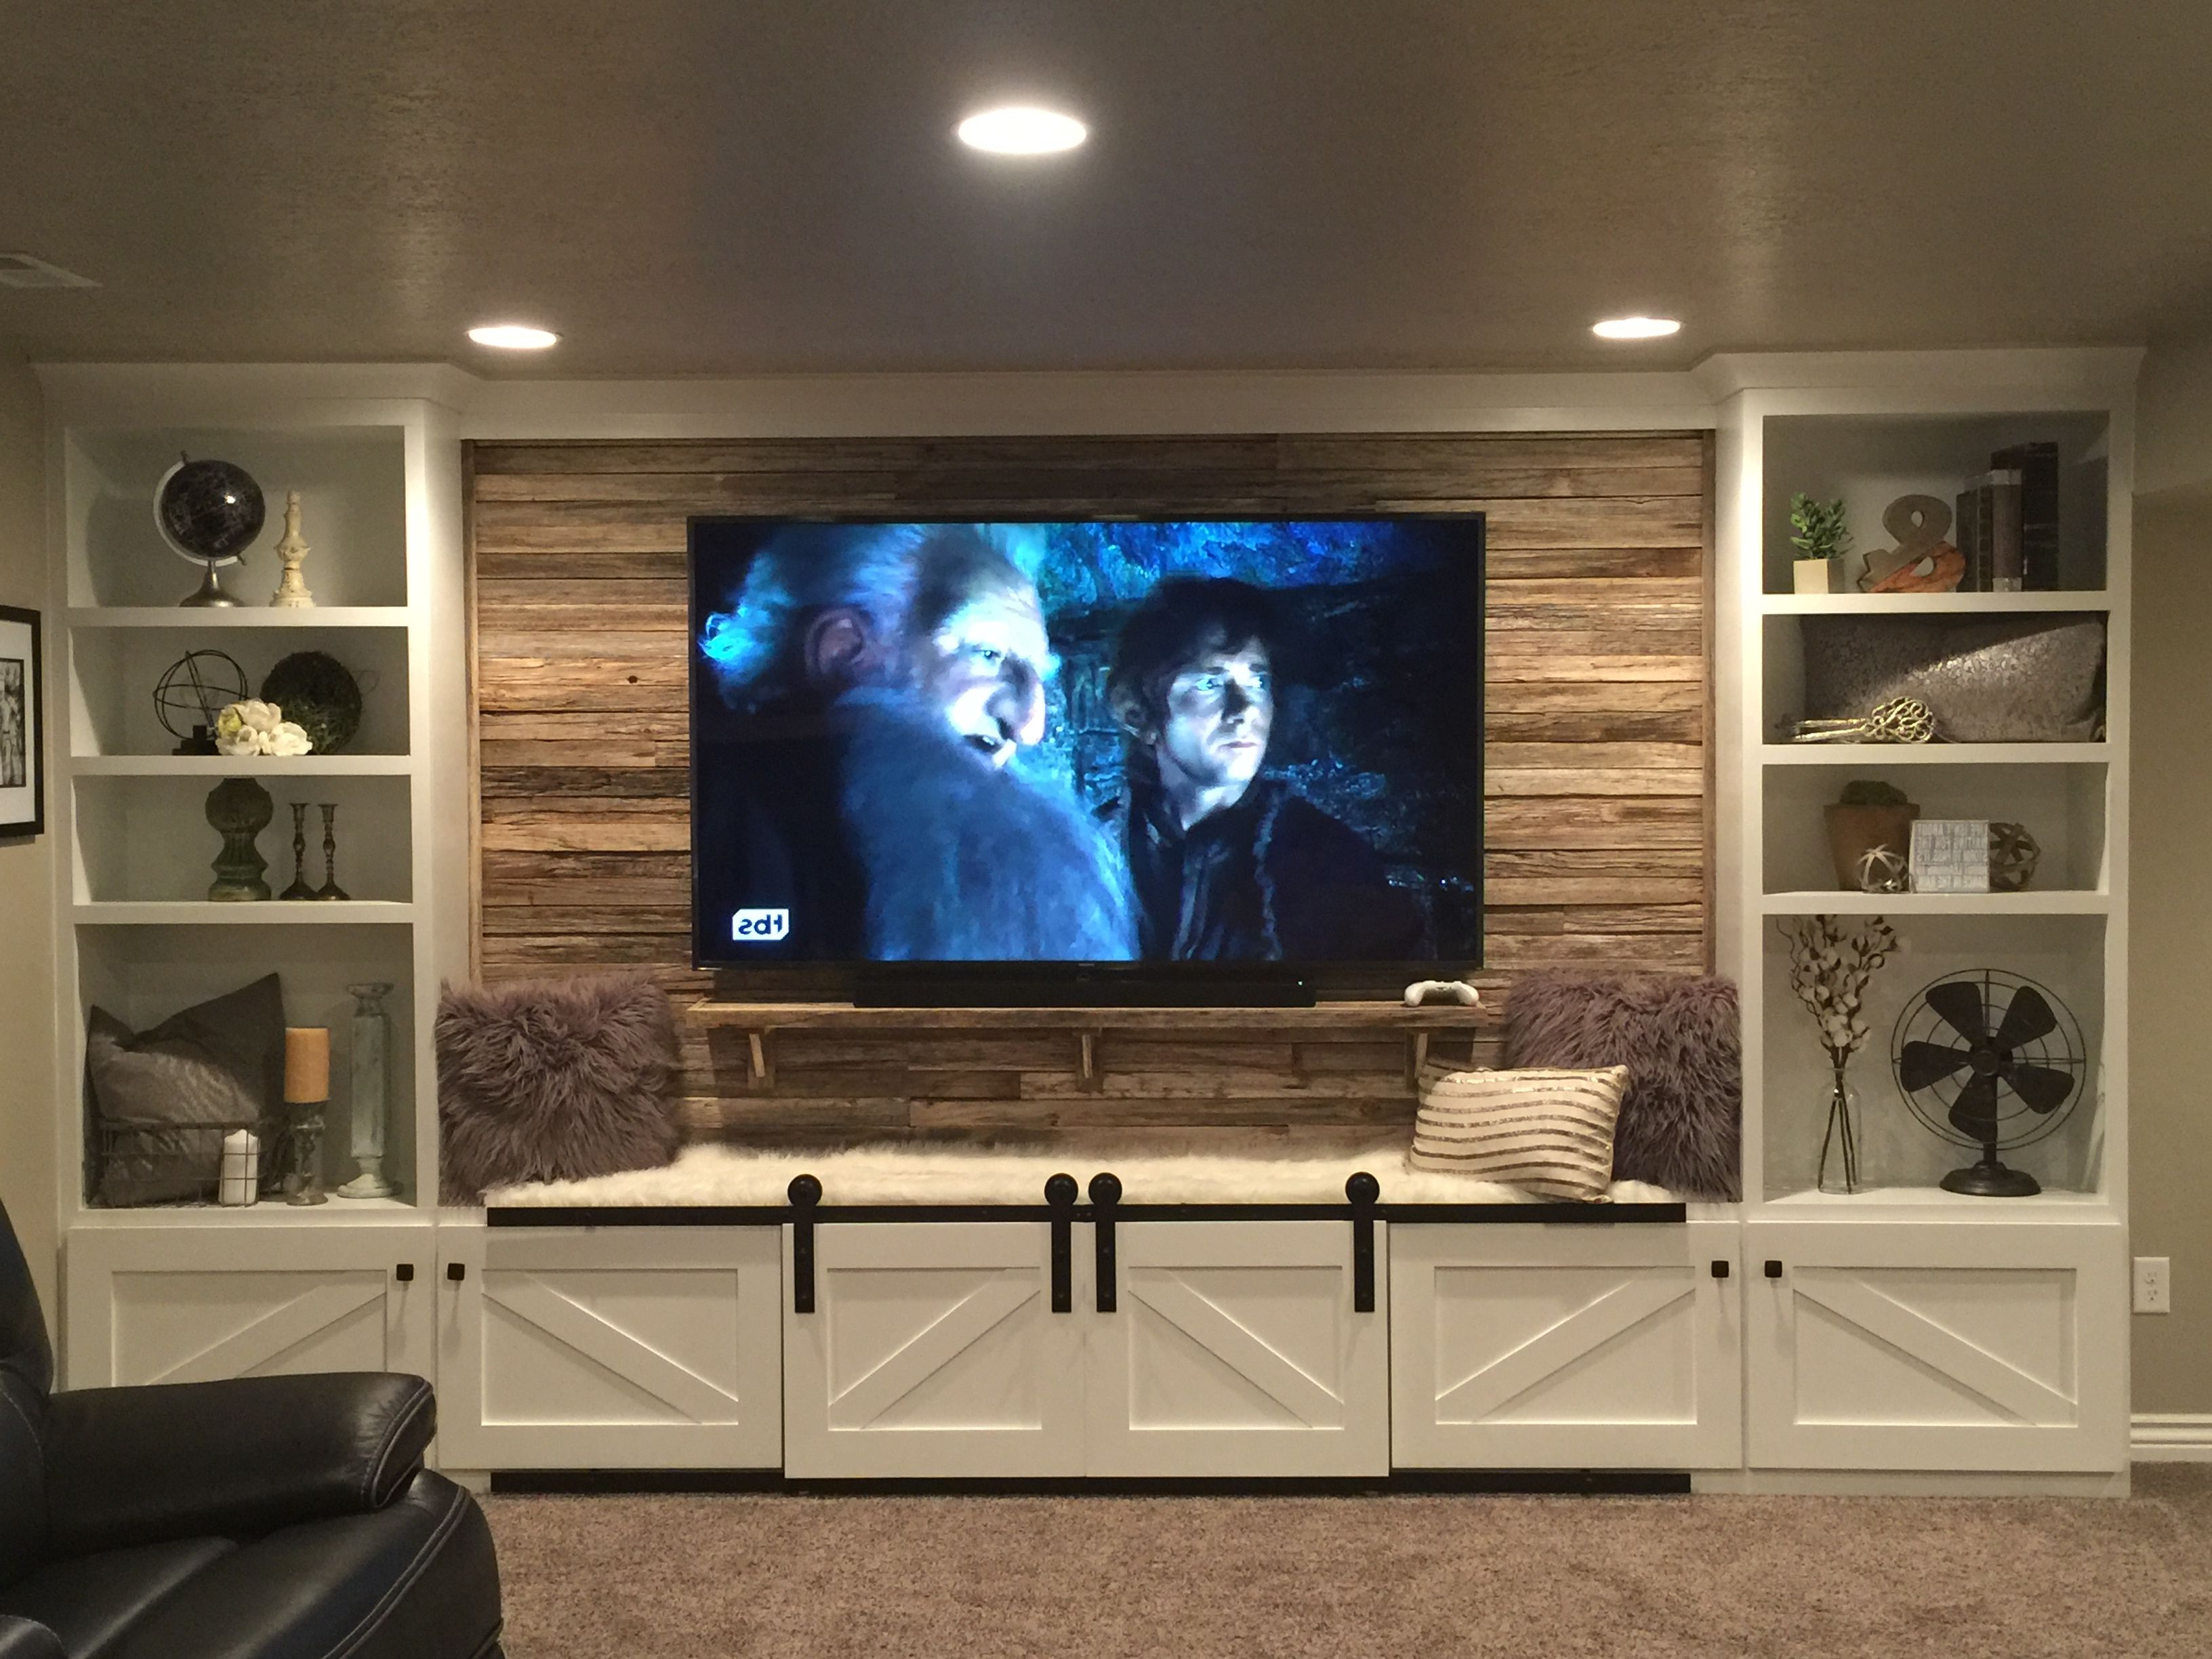 17 Diy Entertainment Center Ideas And Designs For Your New Home Regarding Favorite Tv Entertainment Unit (Gallery 15 of 20)